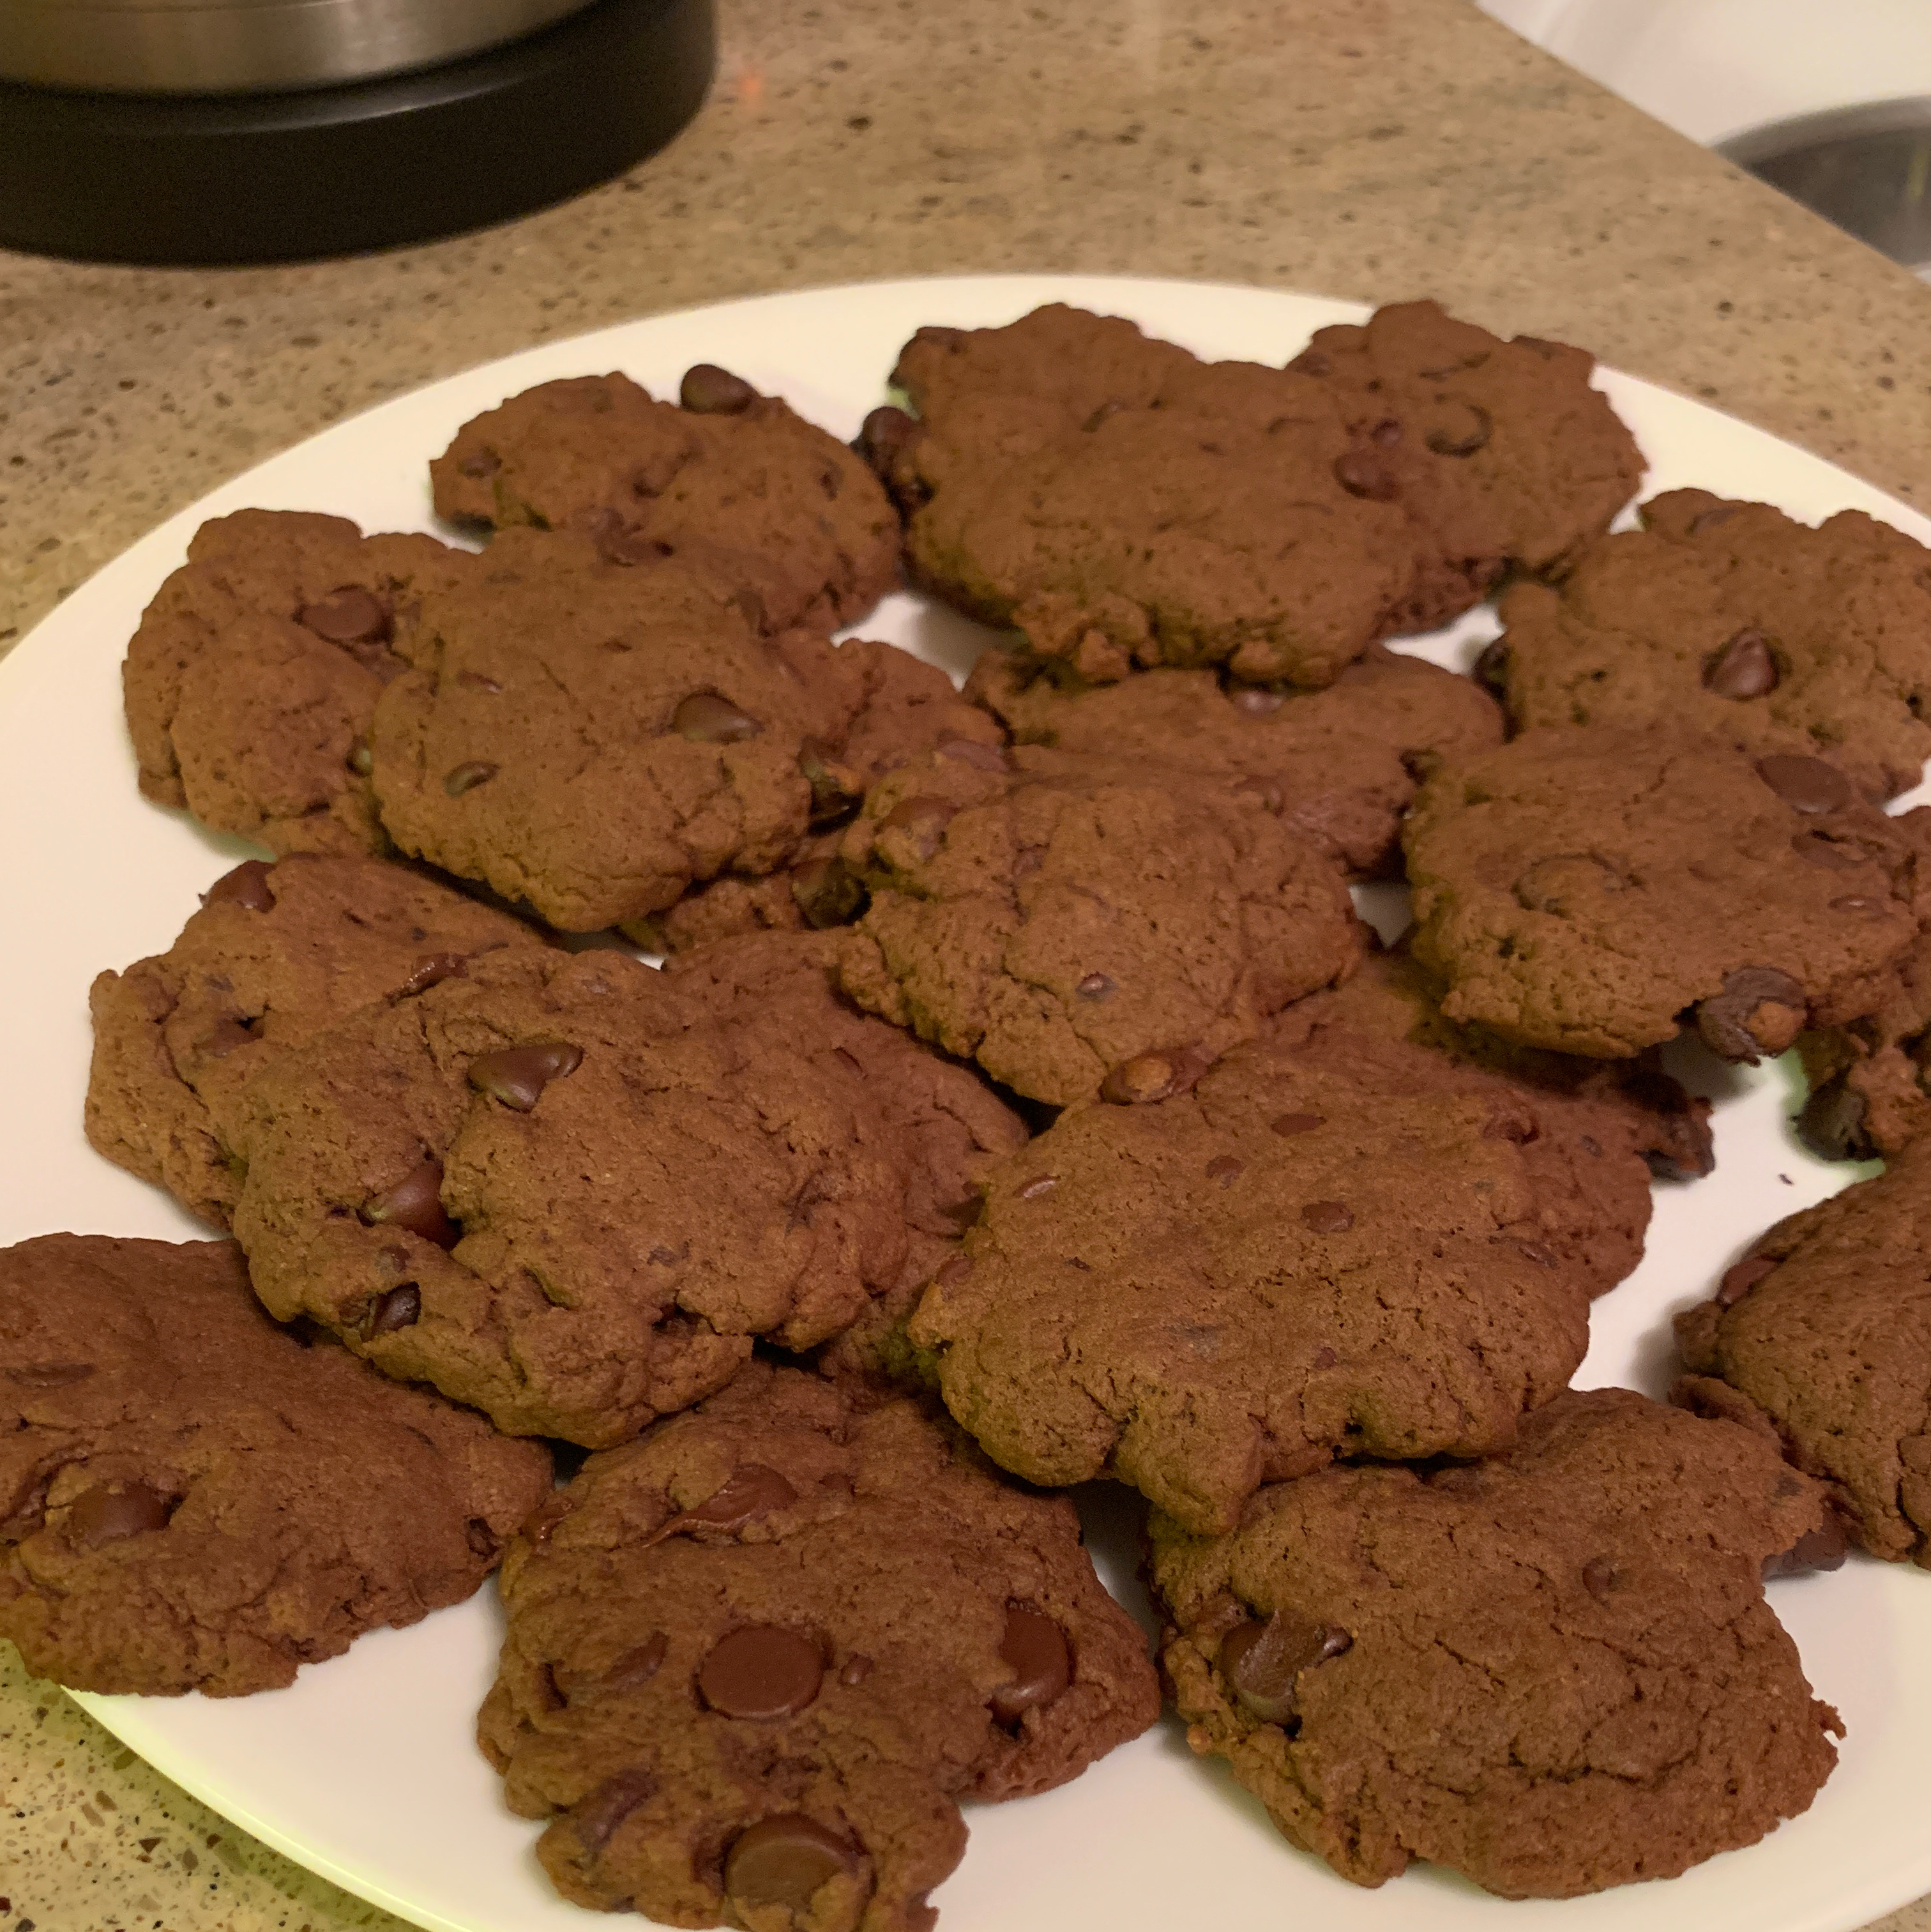 Chocolate Chip Cookies for Special Diets Shefox3